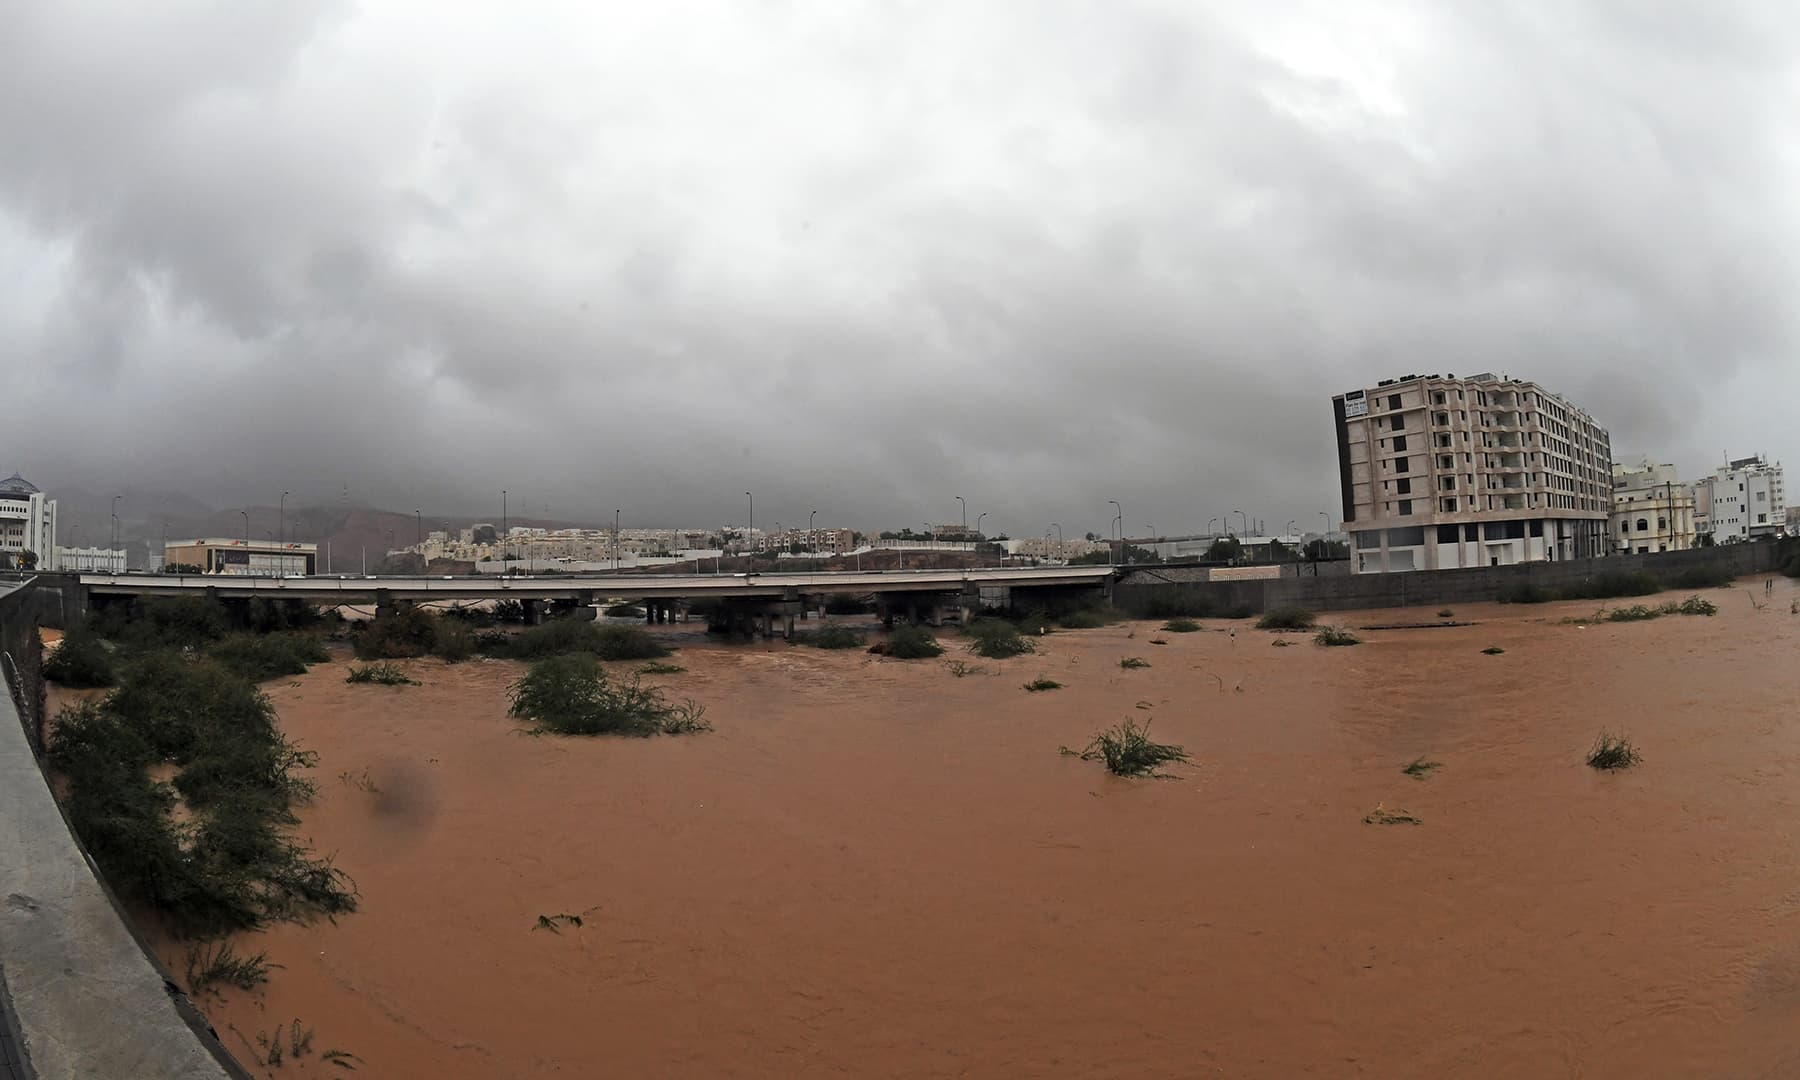 Streets are flooded as Cyclone Shaheen makes the landfall in Muscat, Oman, October 3. — Oman News Agency via Reuters